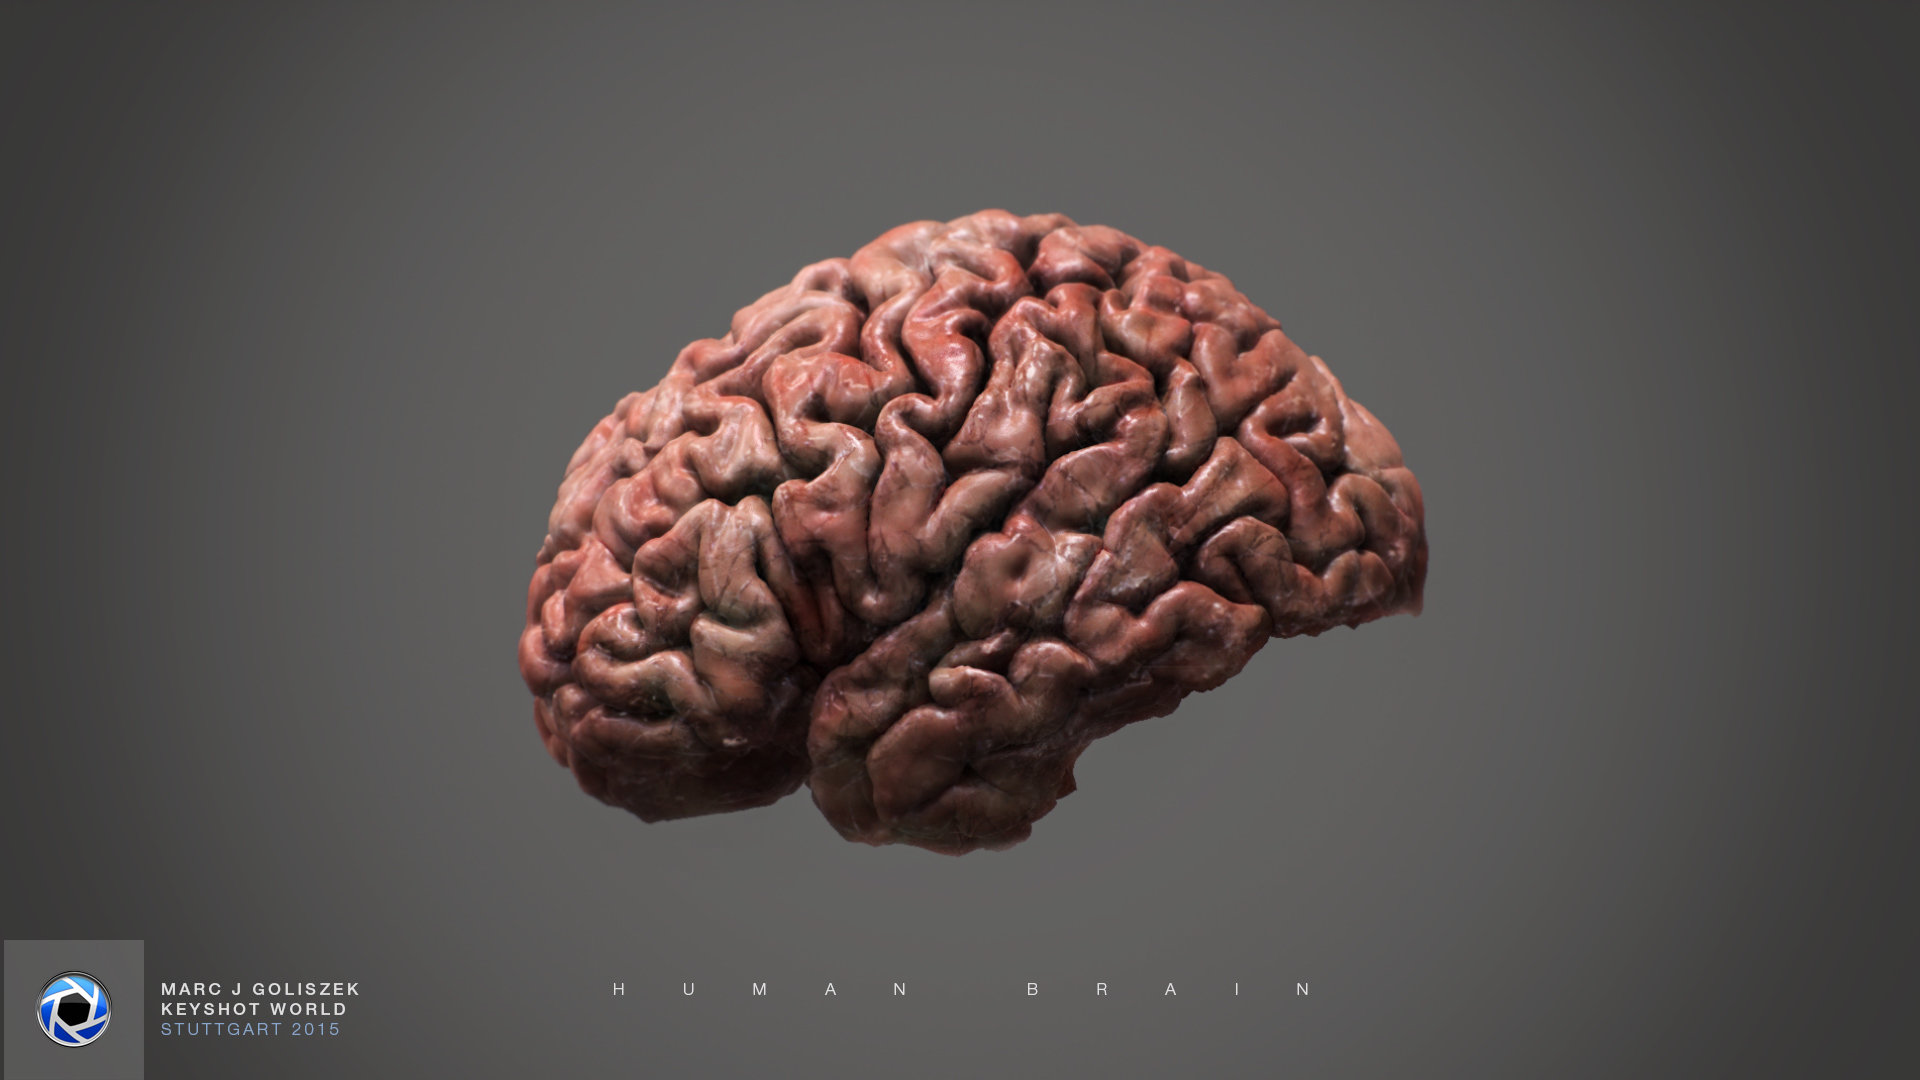 Human Brain by Marc J. Goliszek